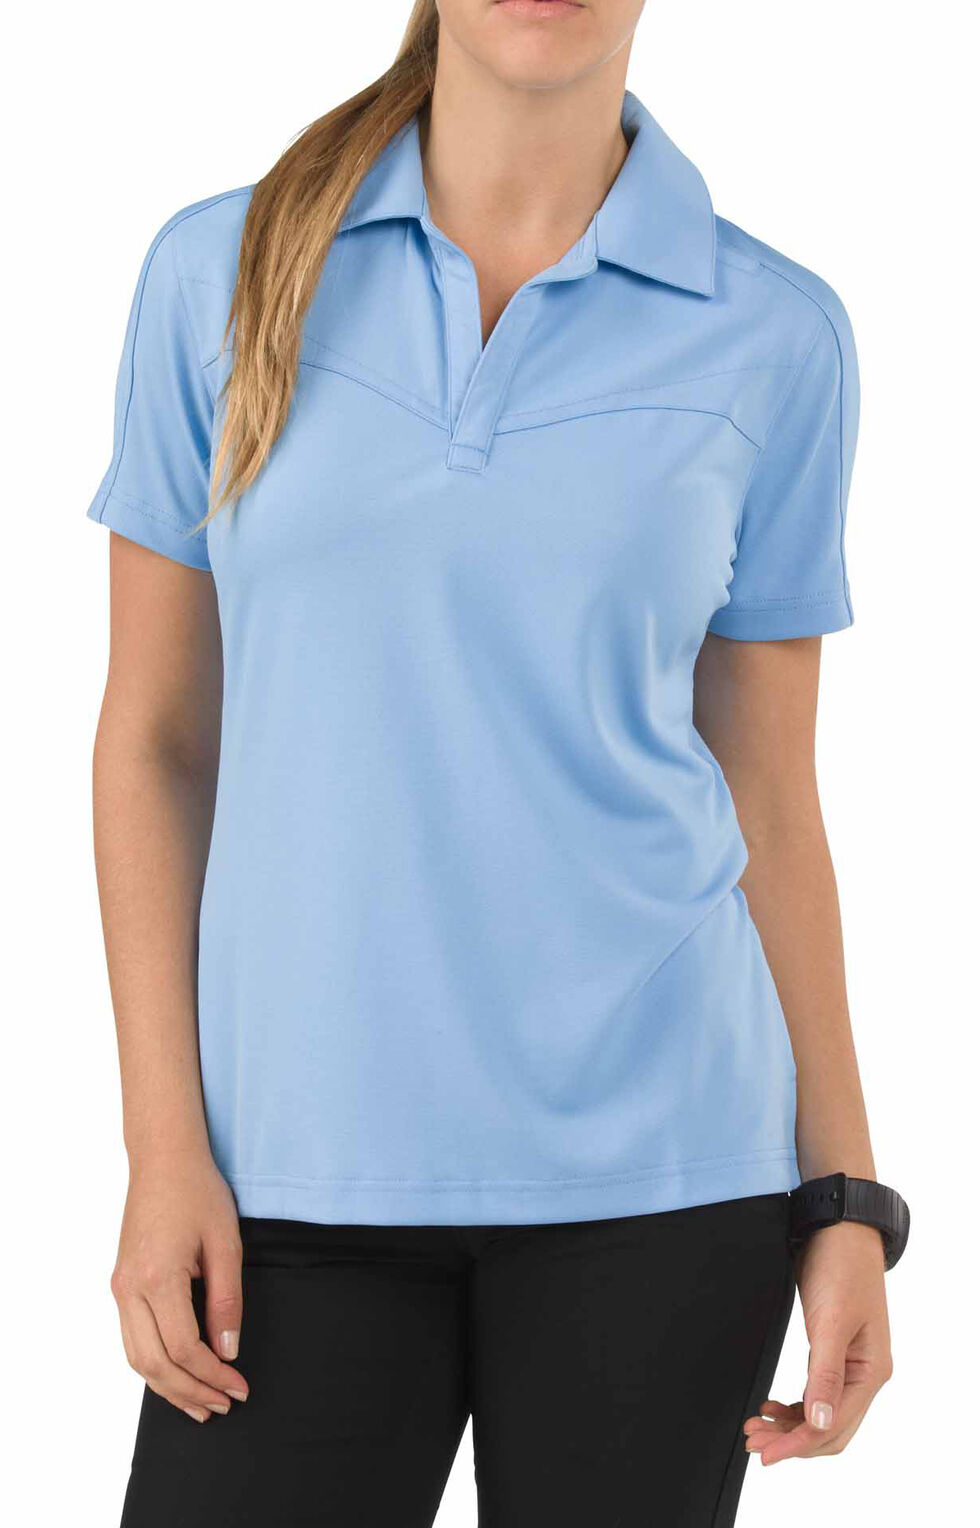 5.11 Tactical Women's Trinity Polo Shirt, Blue, hi-res